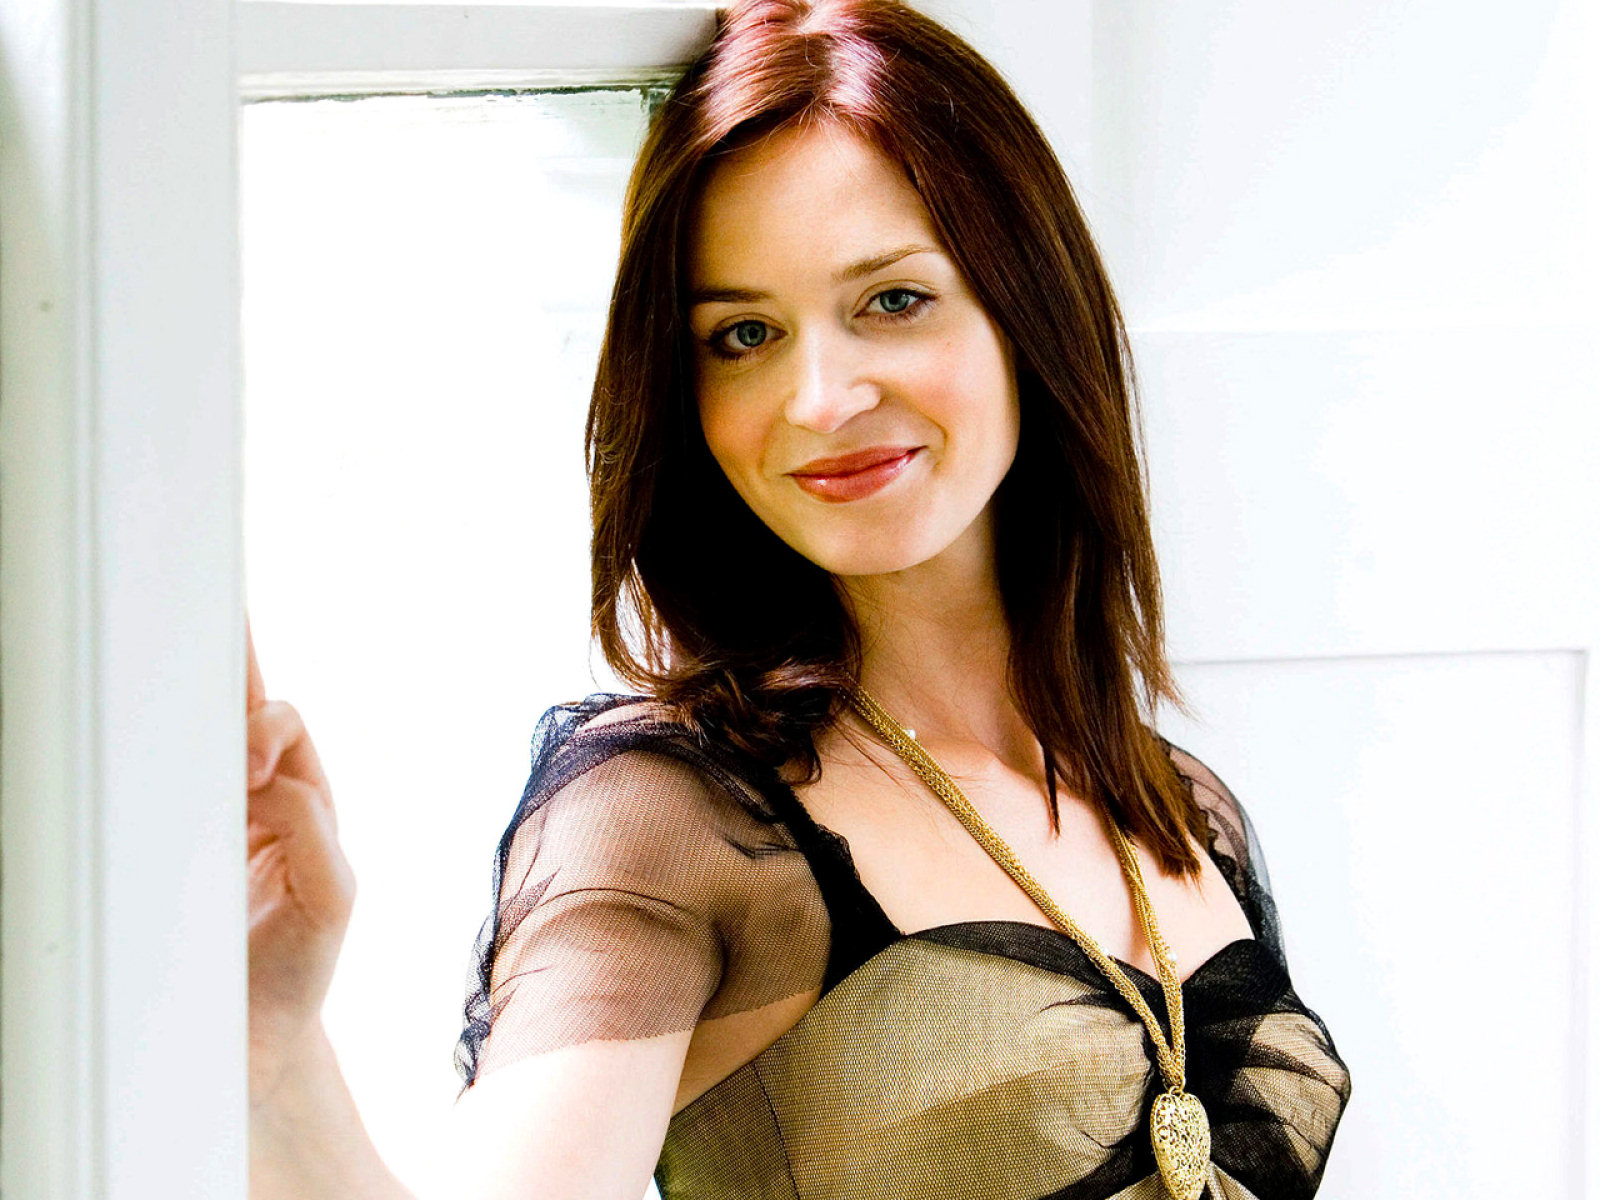 Emily Blunt New Hot HD Wallpapers 2012 ~ HOT CELEBRITY: Emma Stone